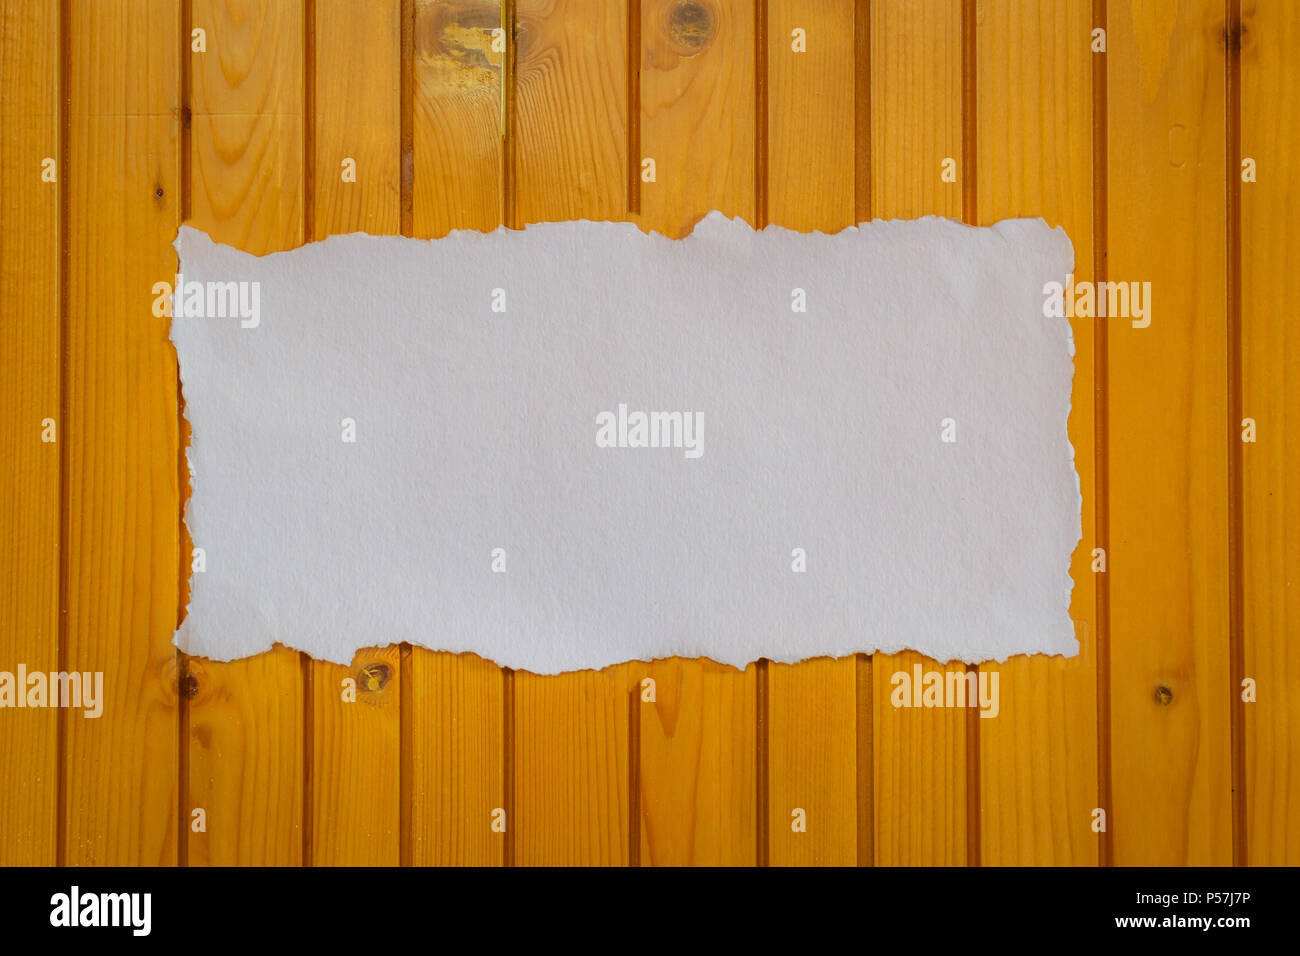 White sheet of paper on a wood panelled background for love notes and invitation cards - Stock Image